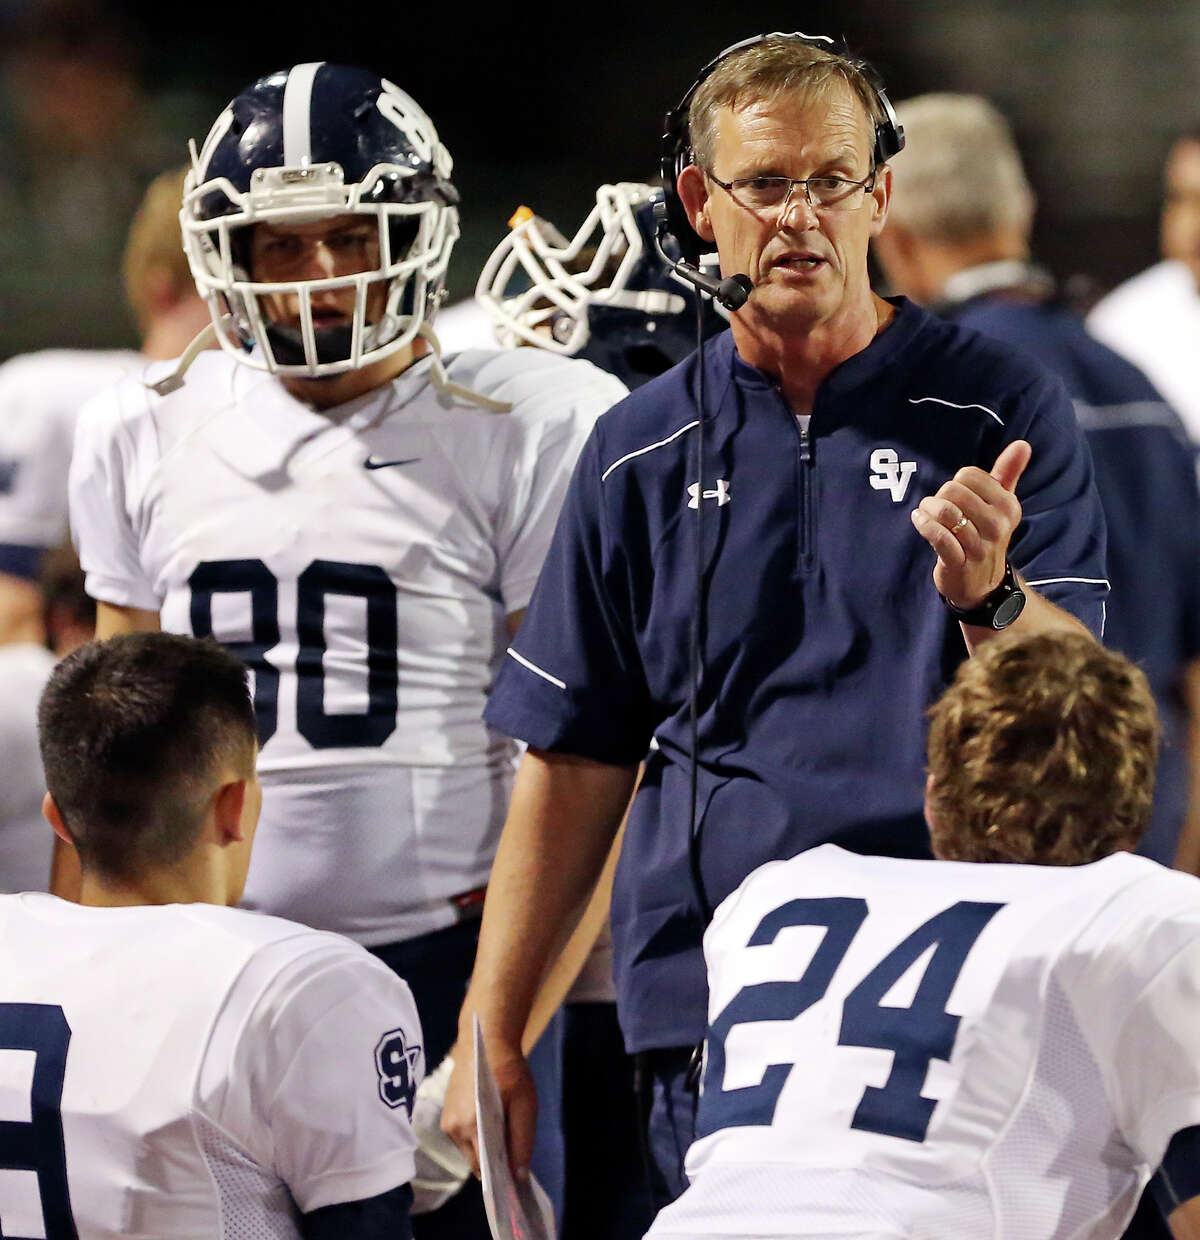 Smithson Valley head coach Larry Hill talks with players during first half action against Clemens on Oct. 16, 2015 at Lehnhoff Stadium.